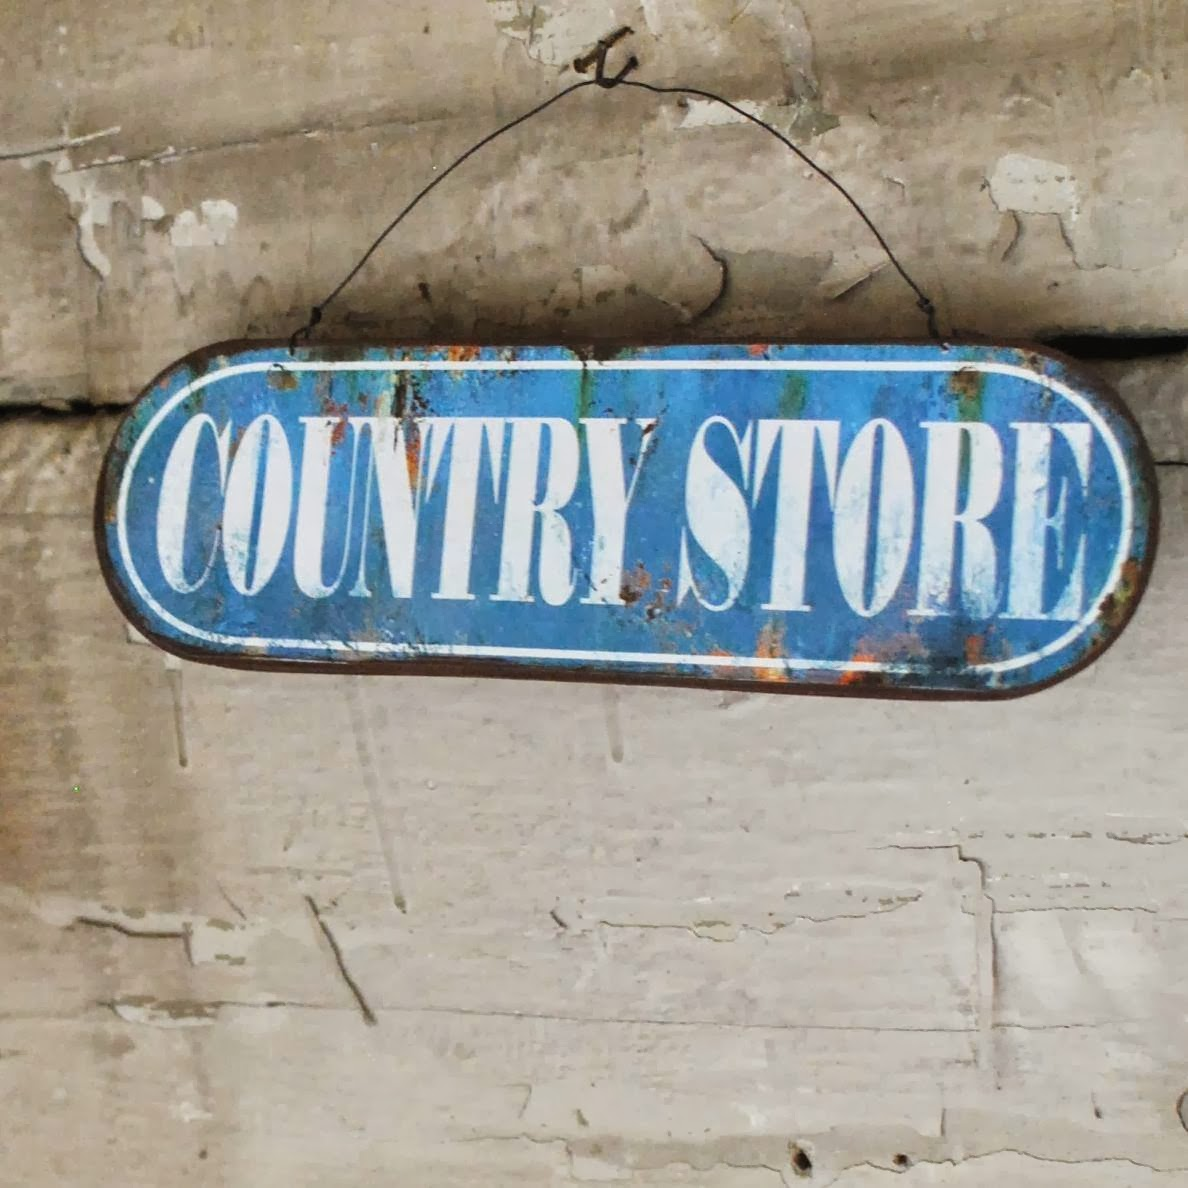 S&S Countrystore